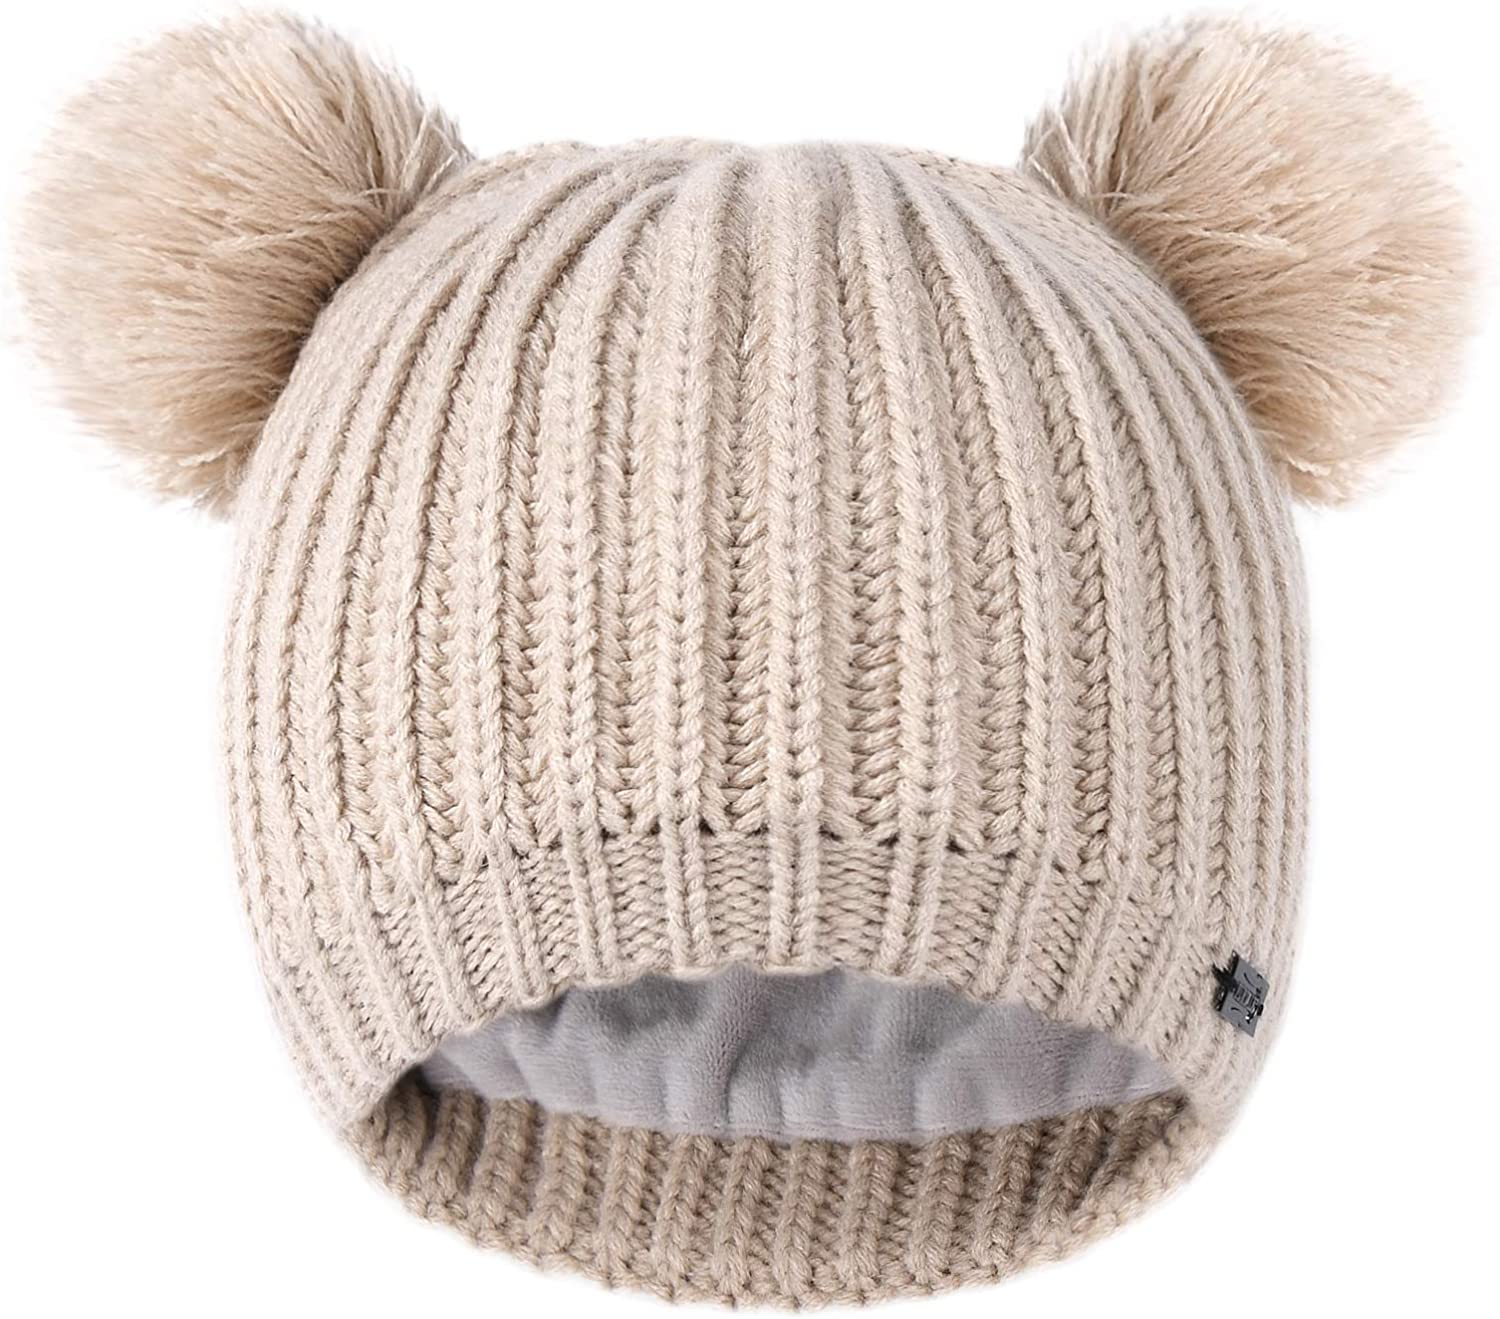 New mail order FURTALK Toddler Super sale period limited Winter Hat Pom Beanie for Fleece Knit Hats Lined